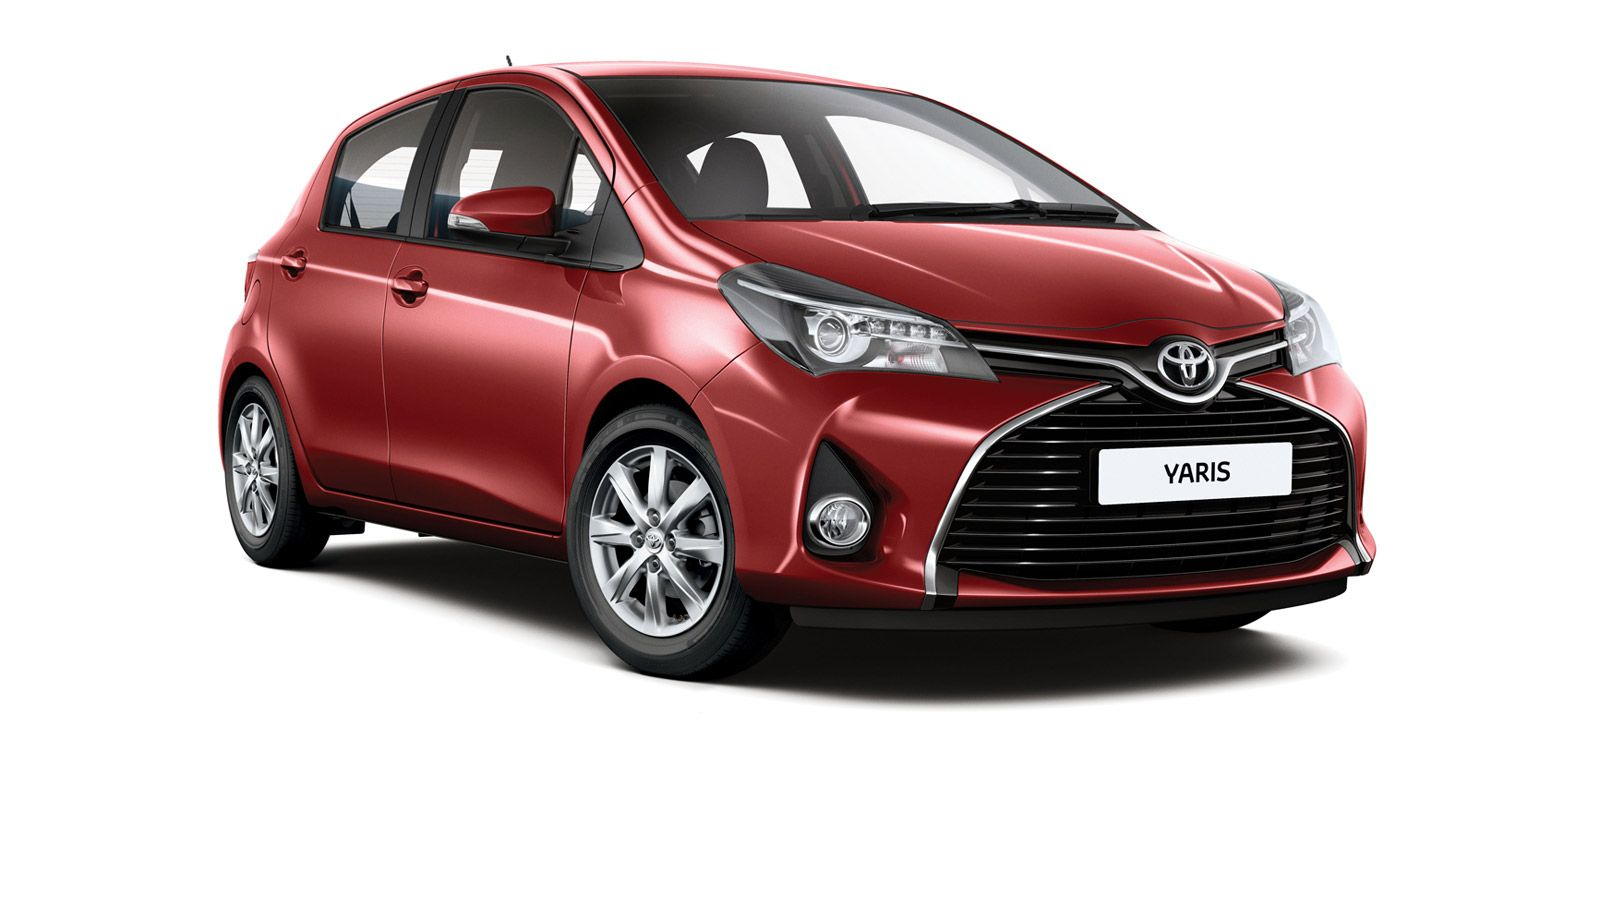 Toyota yaris i want this car toyota yaris pinterest toyota cars and toyota cars